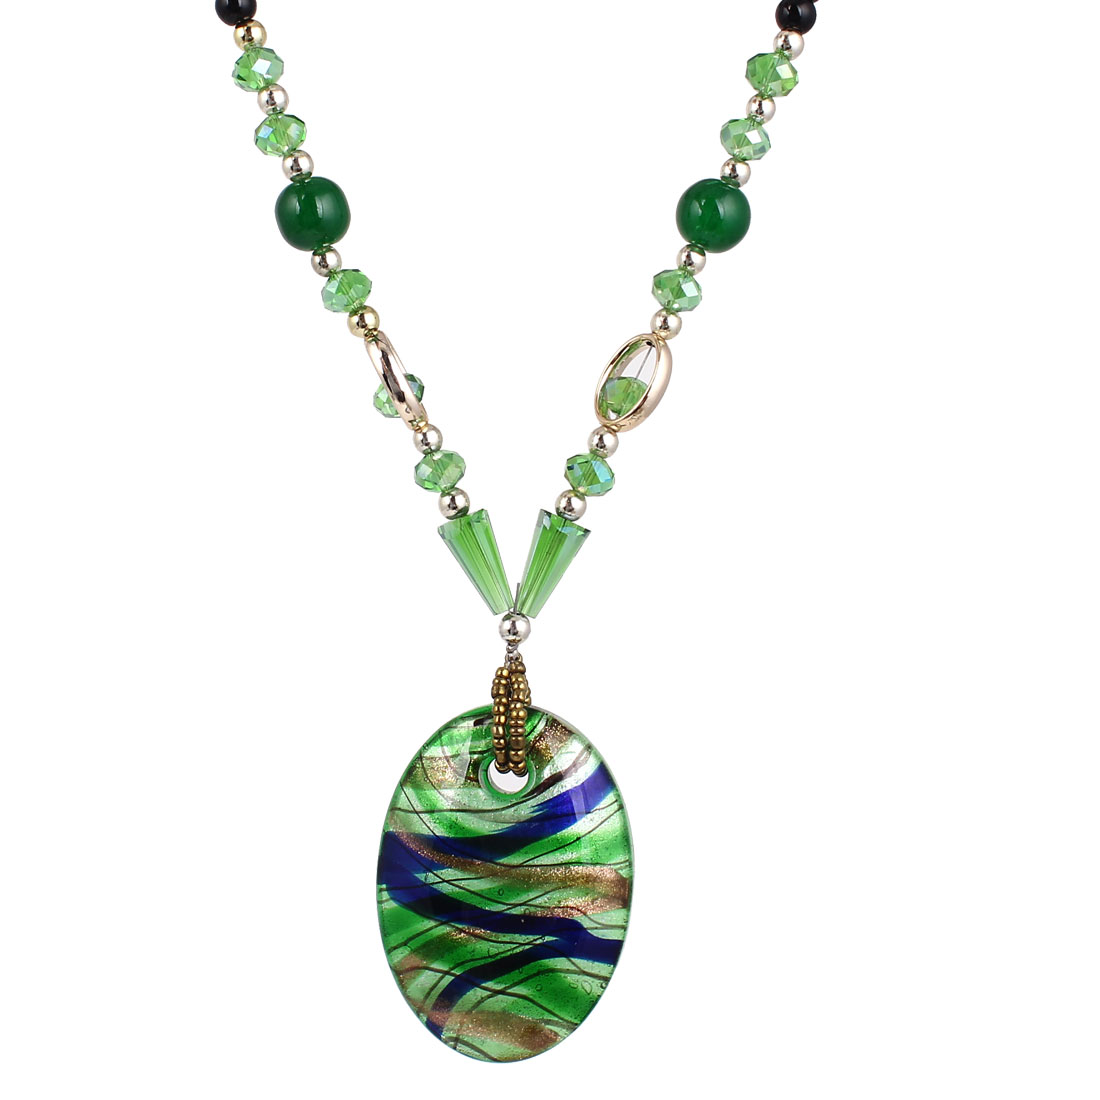 Green Black Plastic Beaded Neck String Round Beads Oval Shape Glass Pendant Necklace